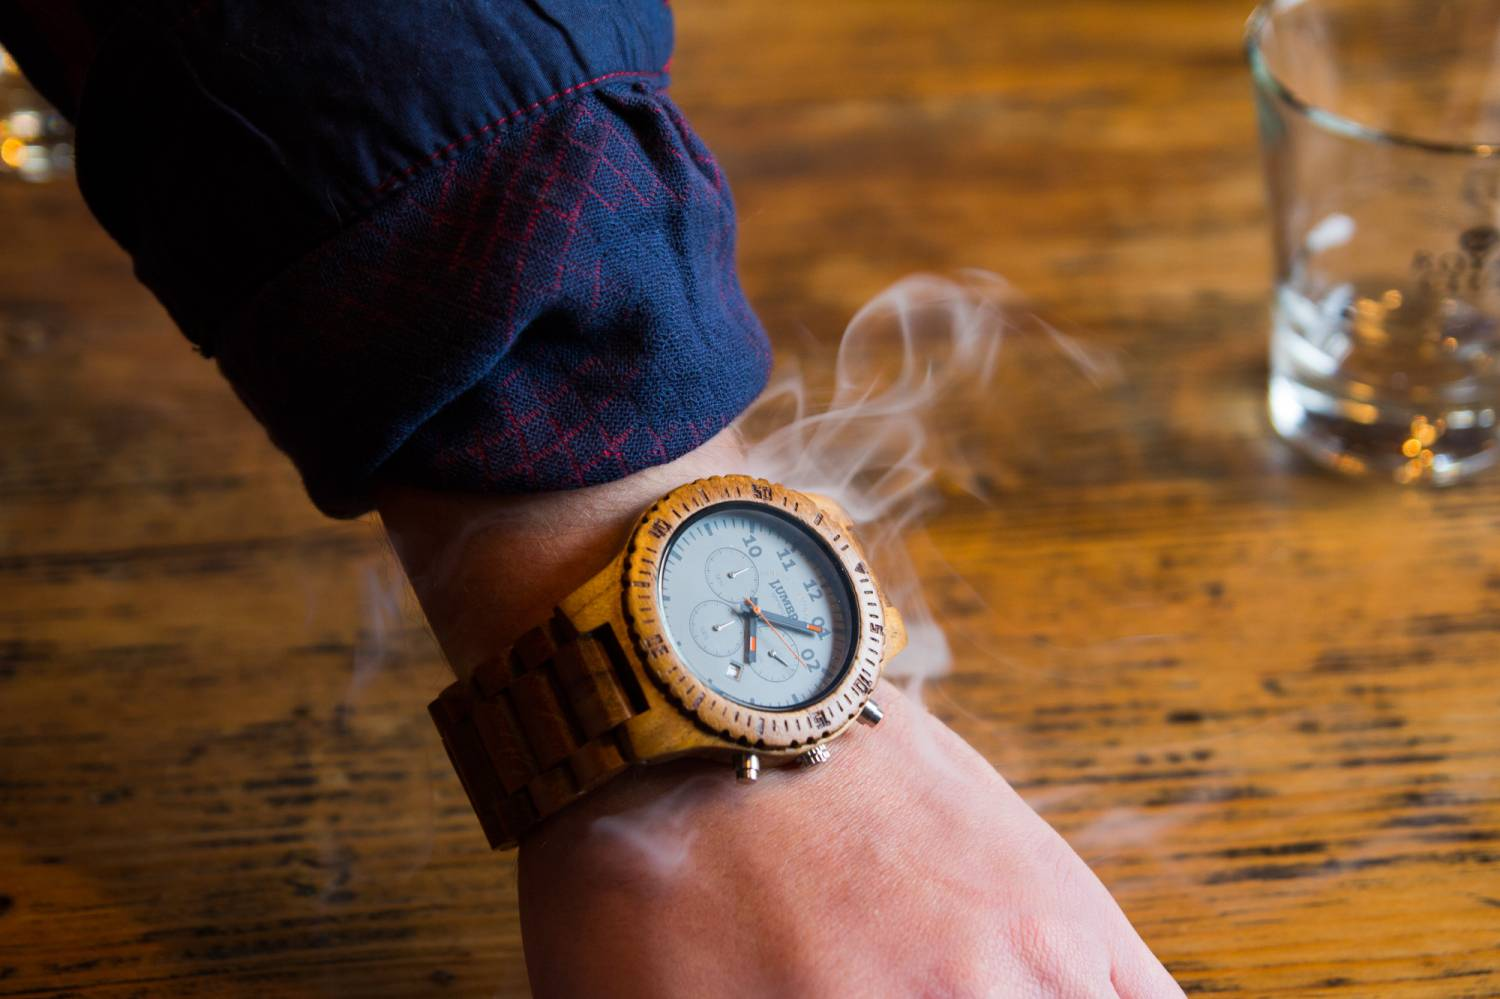 Wooden watch care